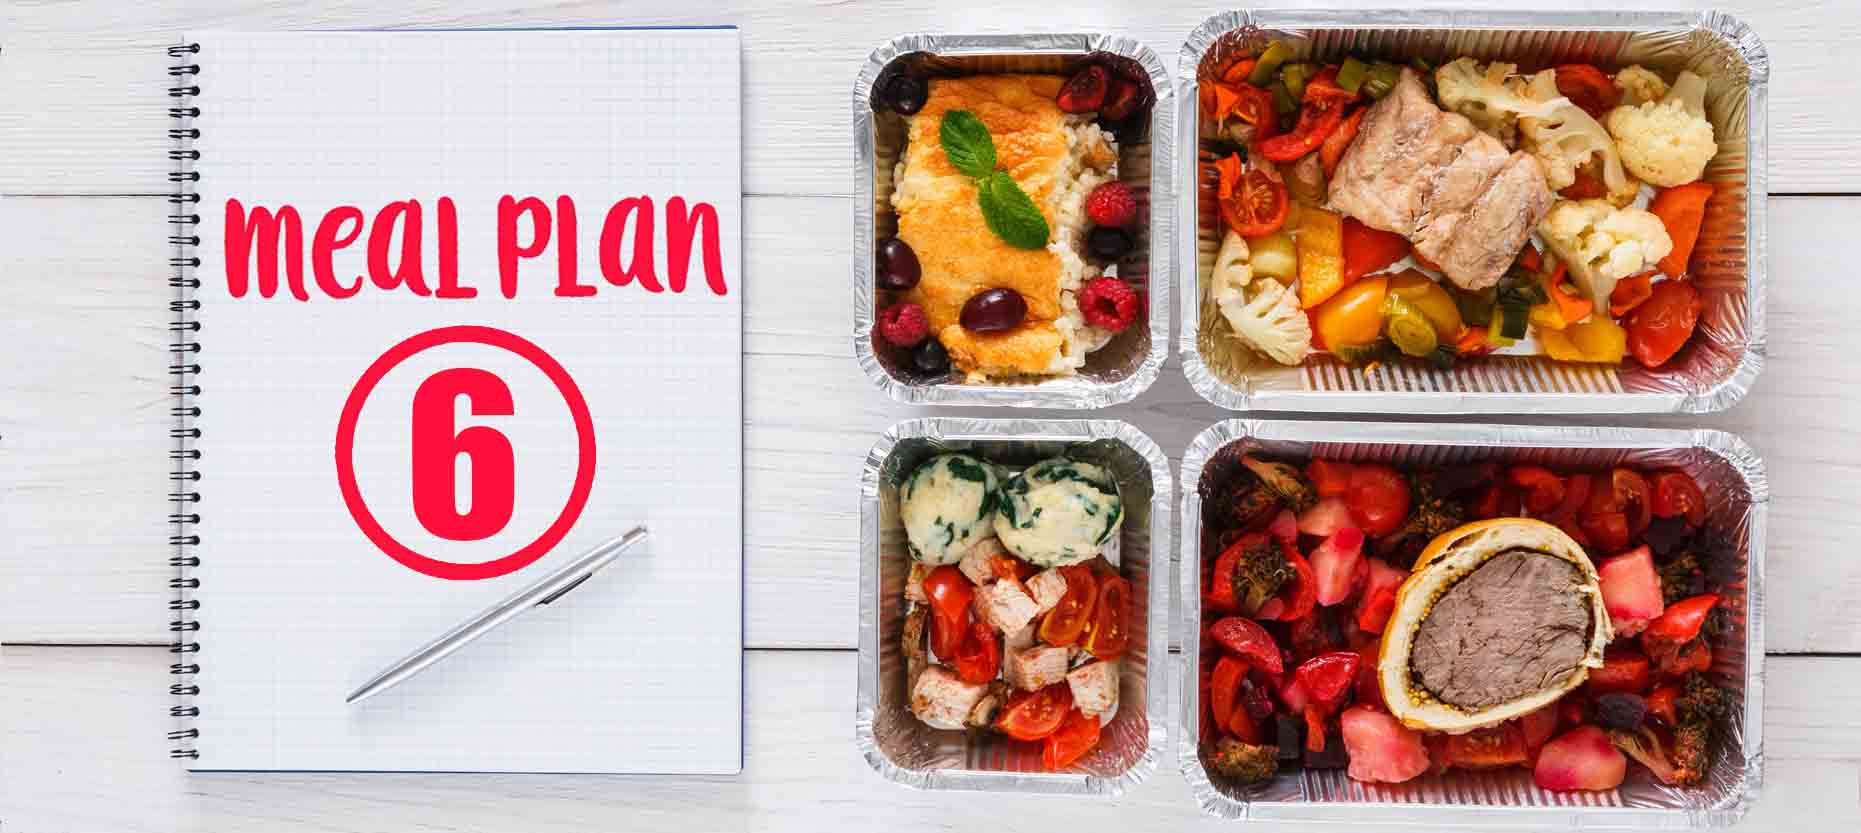 Balanced Sample Meal Plan-6 for Healthy Individuals